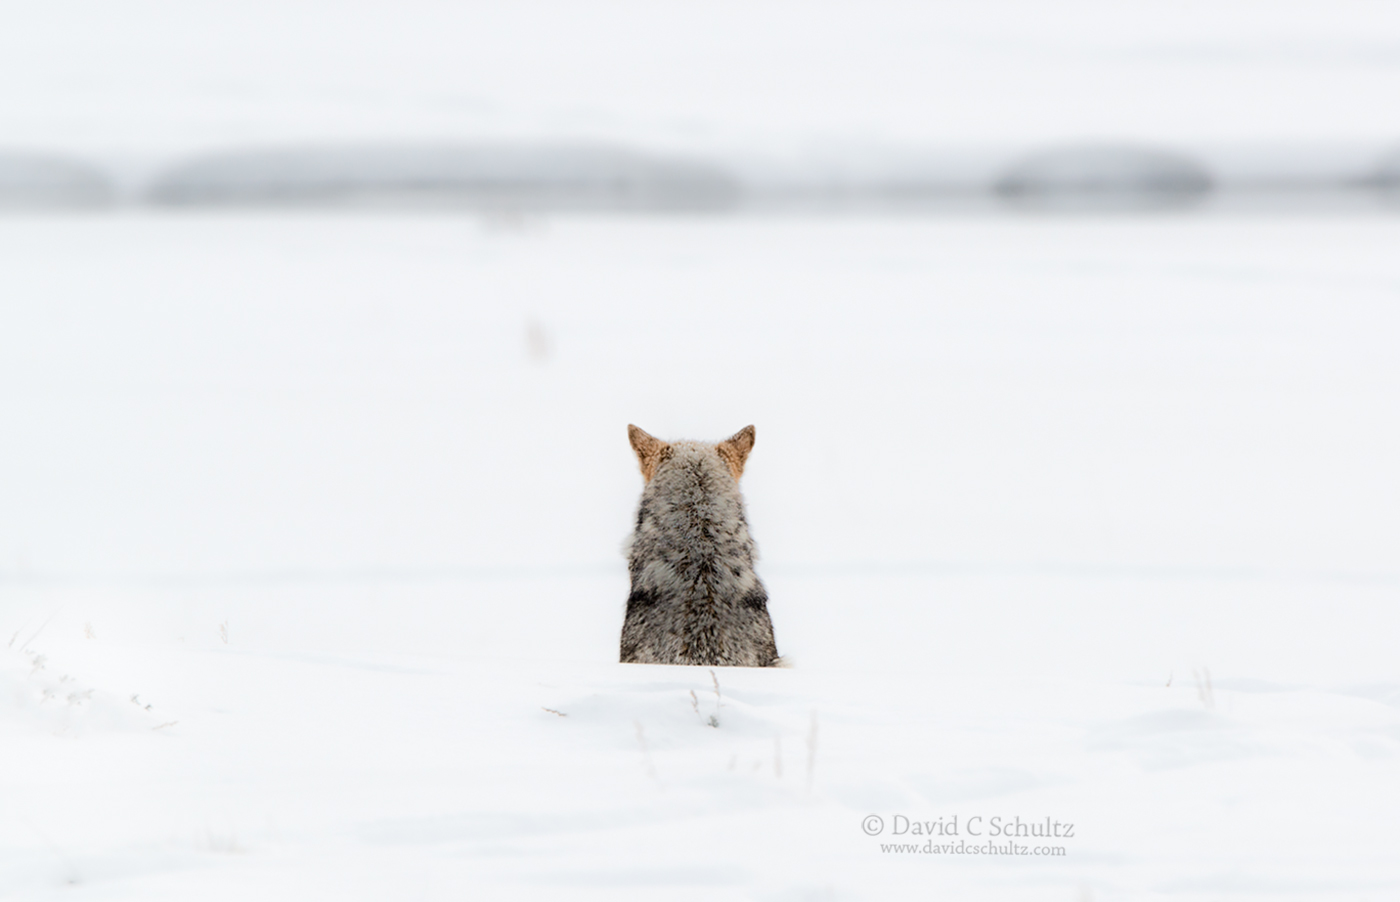 Coyote in Yellowstone - Image #161-3120